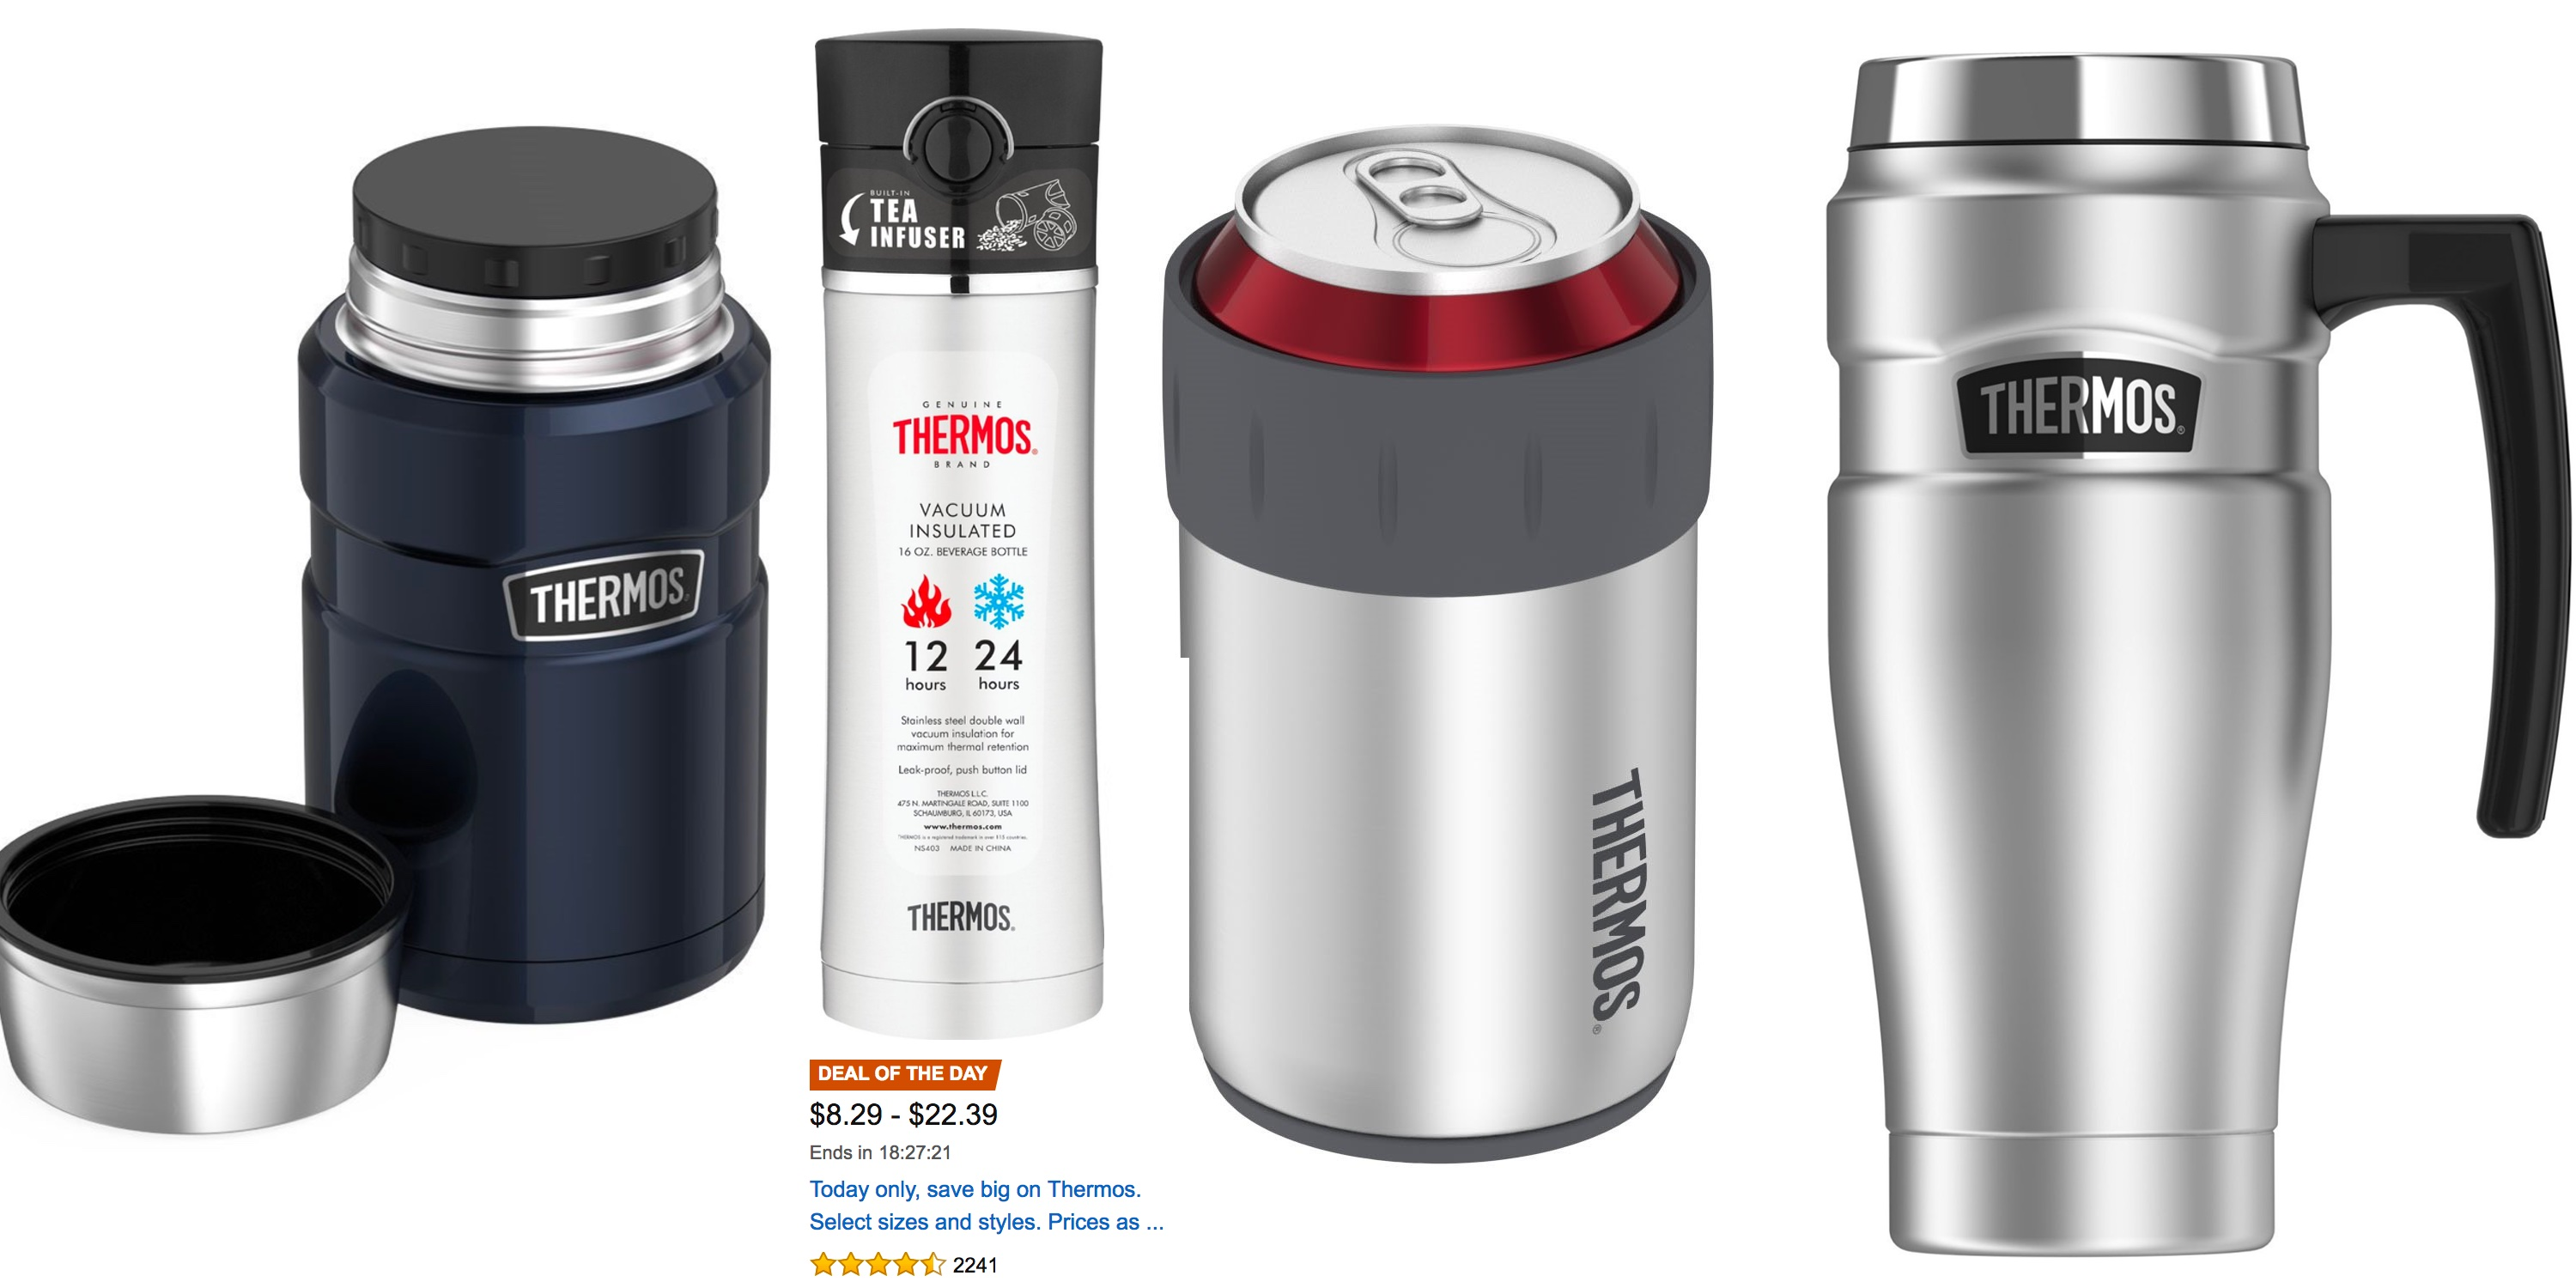 thermos-deal-save-amazon